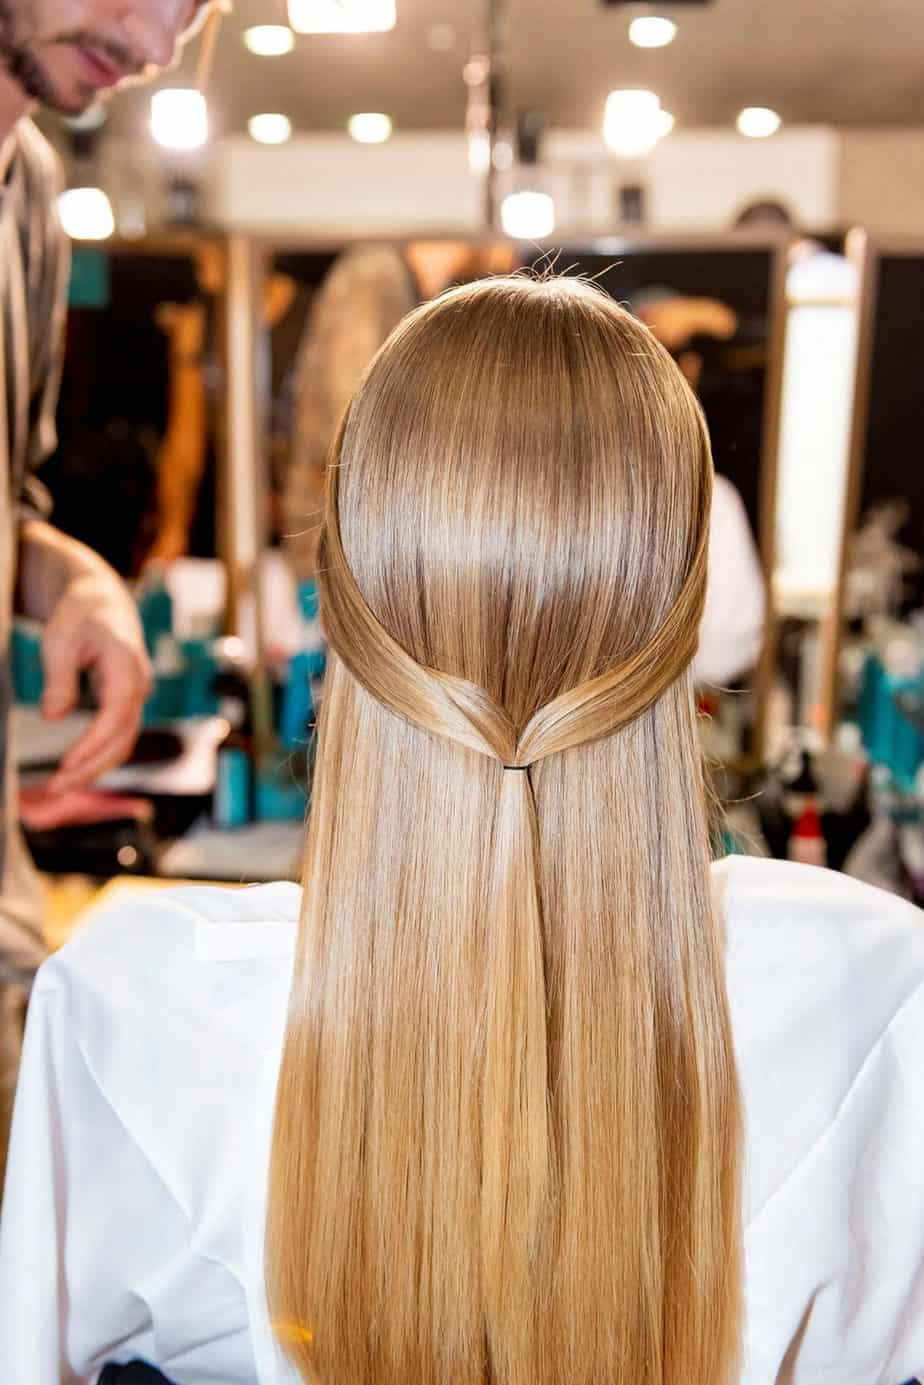 _Missoni_SS19_Milano Fashion Week_ Hair by Anthony Turner for Moroccanoil_photographer name MATTEO CAVALLERI (6)